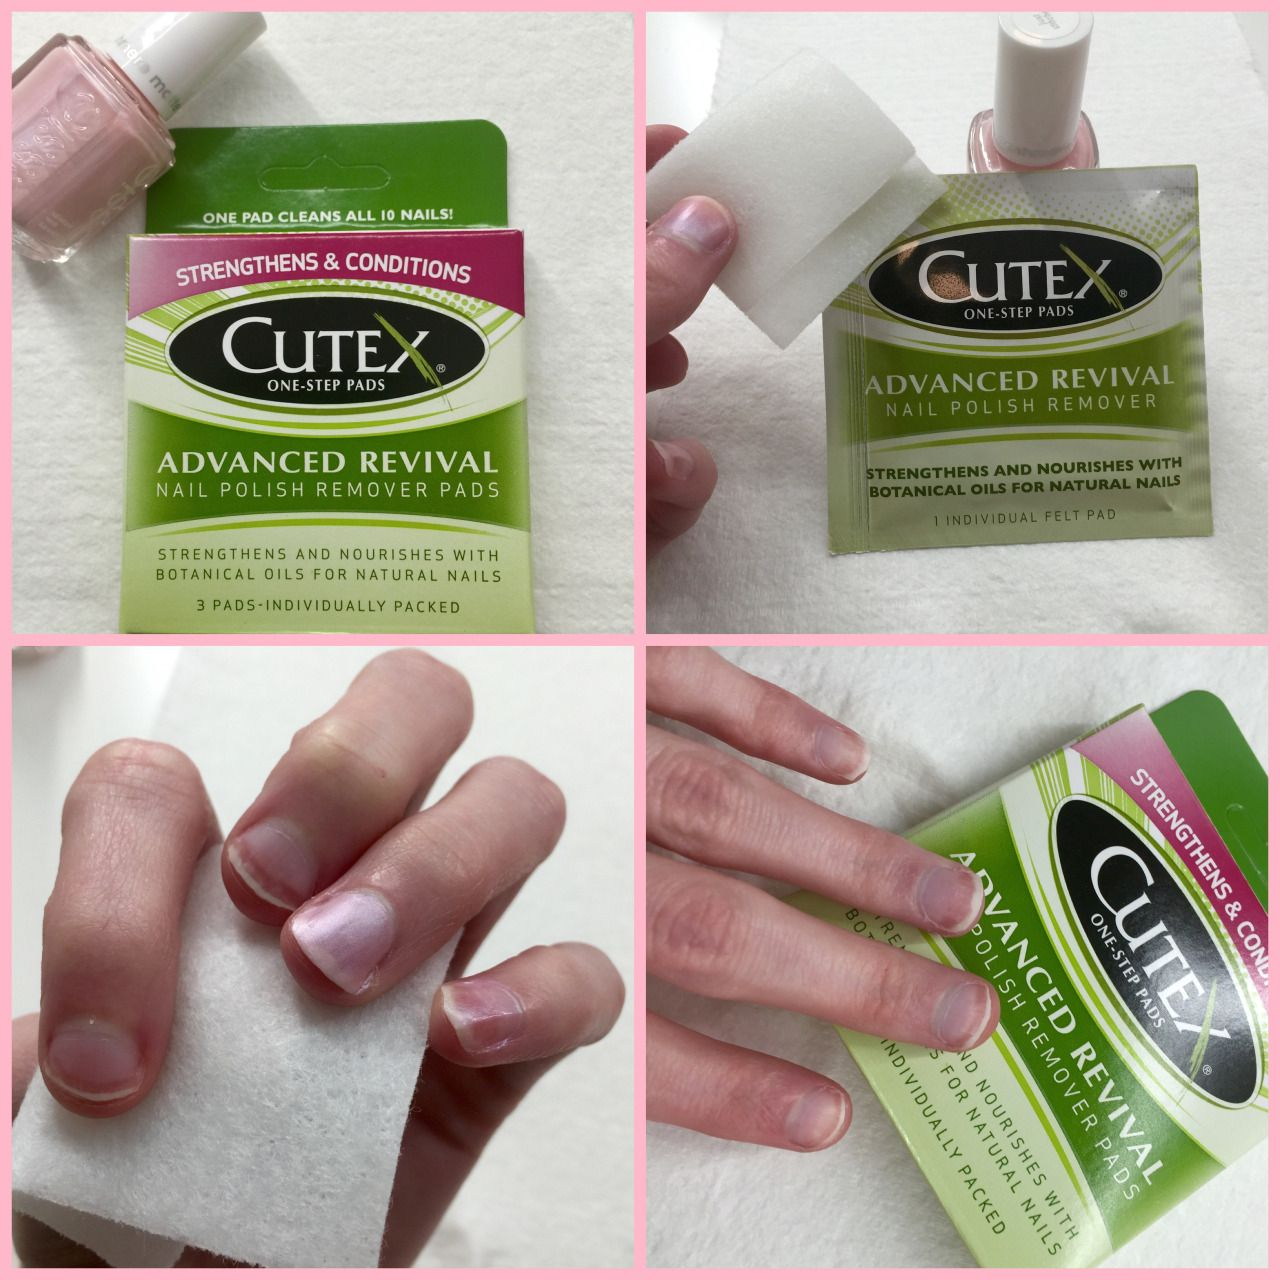 These Cutex Nail Polish Remover Pads Were Awesome They Got My Nail Polish Off Super Quickly And Wit Nail Polish Remover Pads Nail Polish Remover Healthy Nails